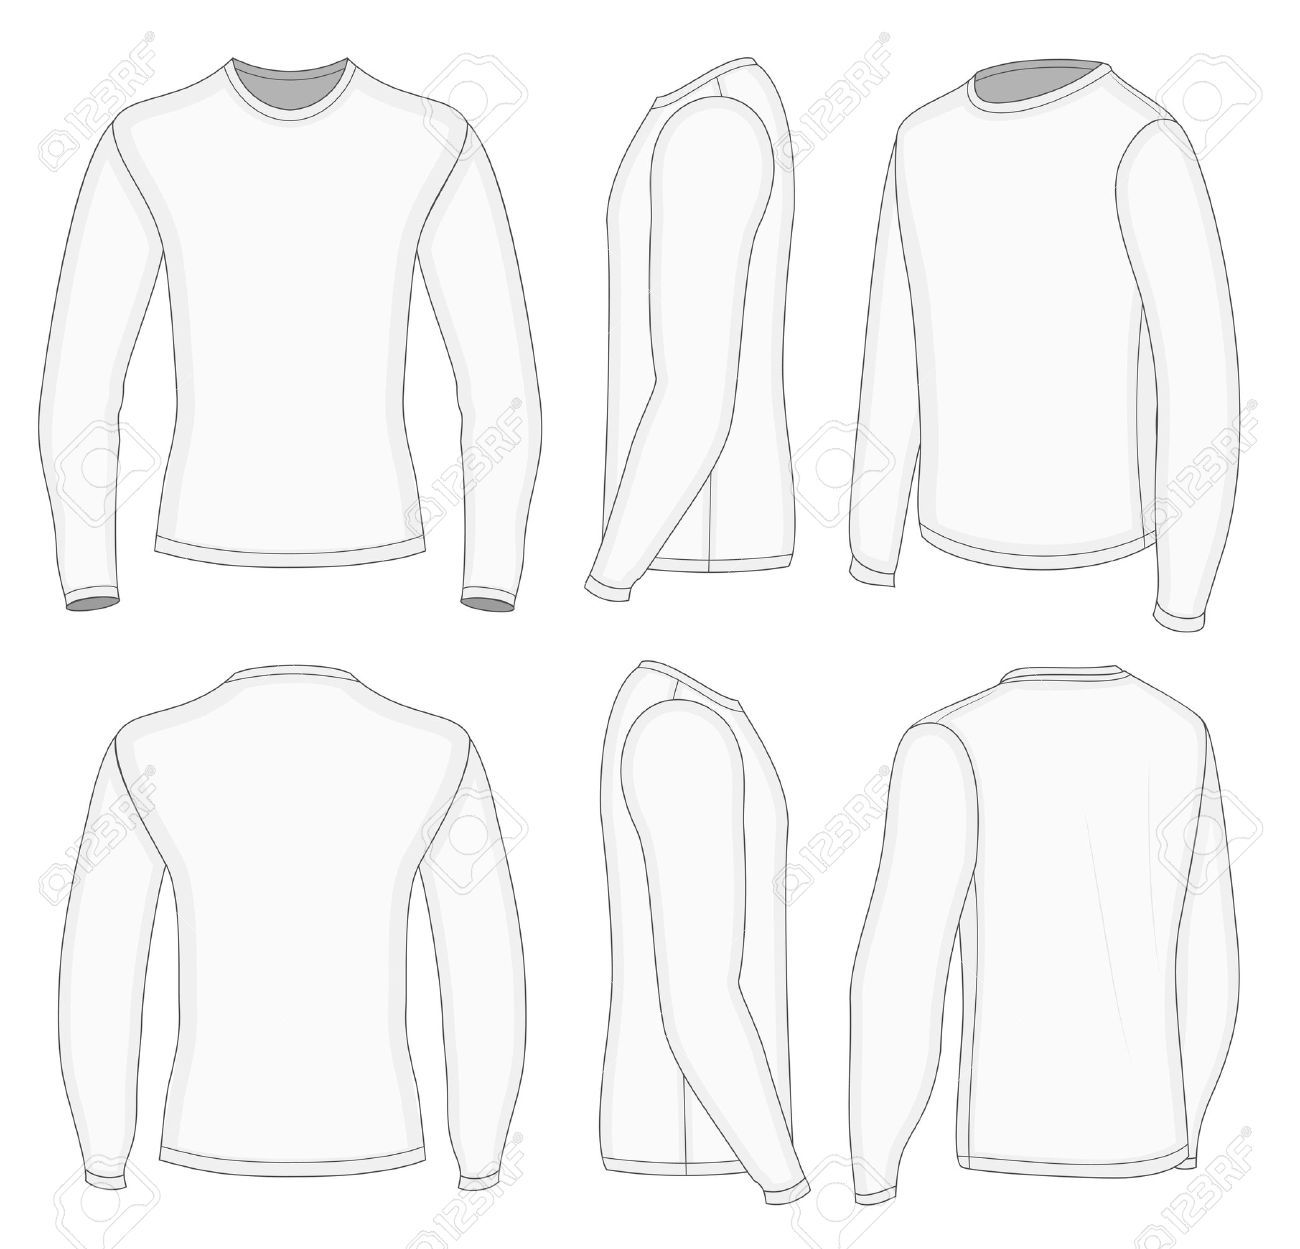 All Six Views Mens White Long Sleeve T Shirt Design